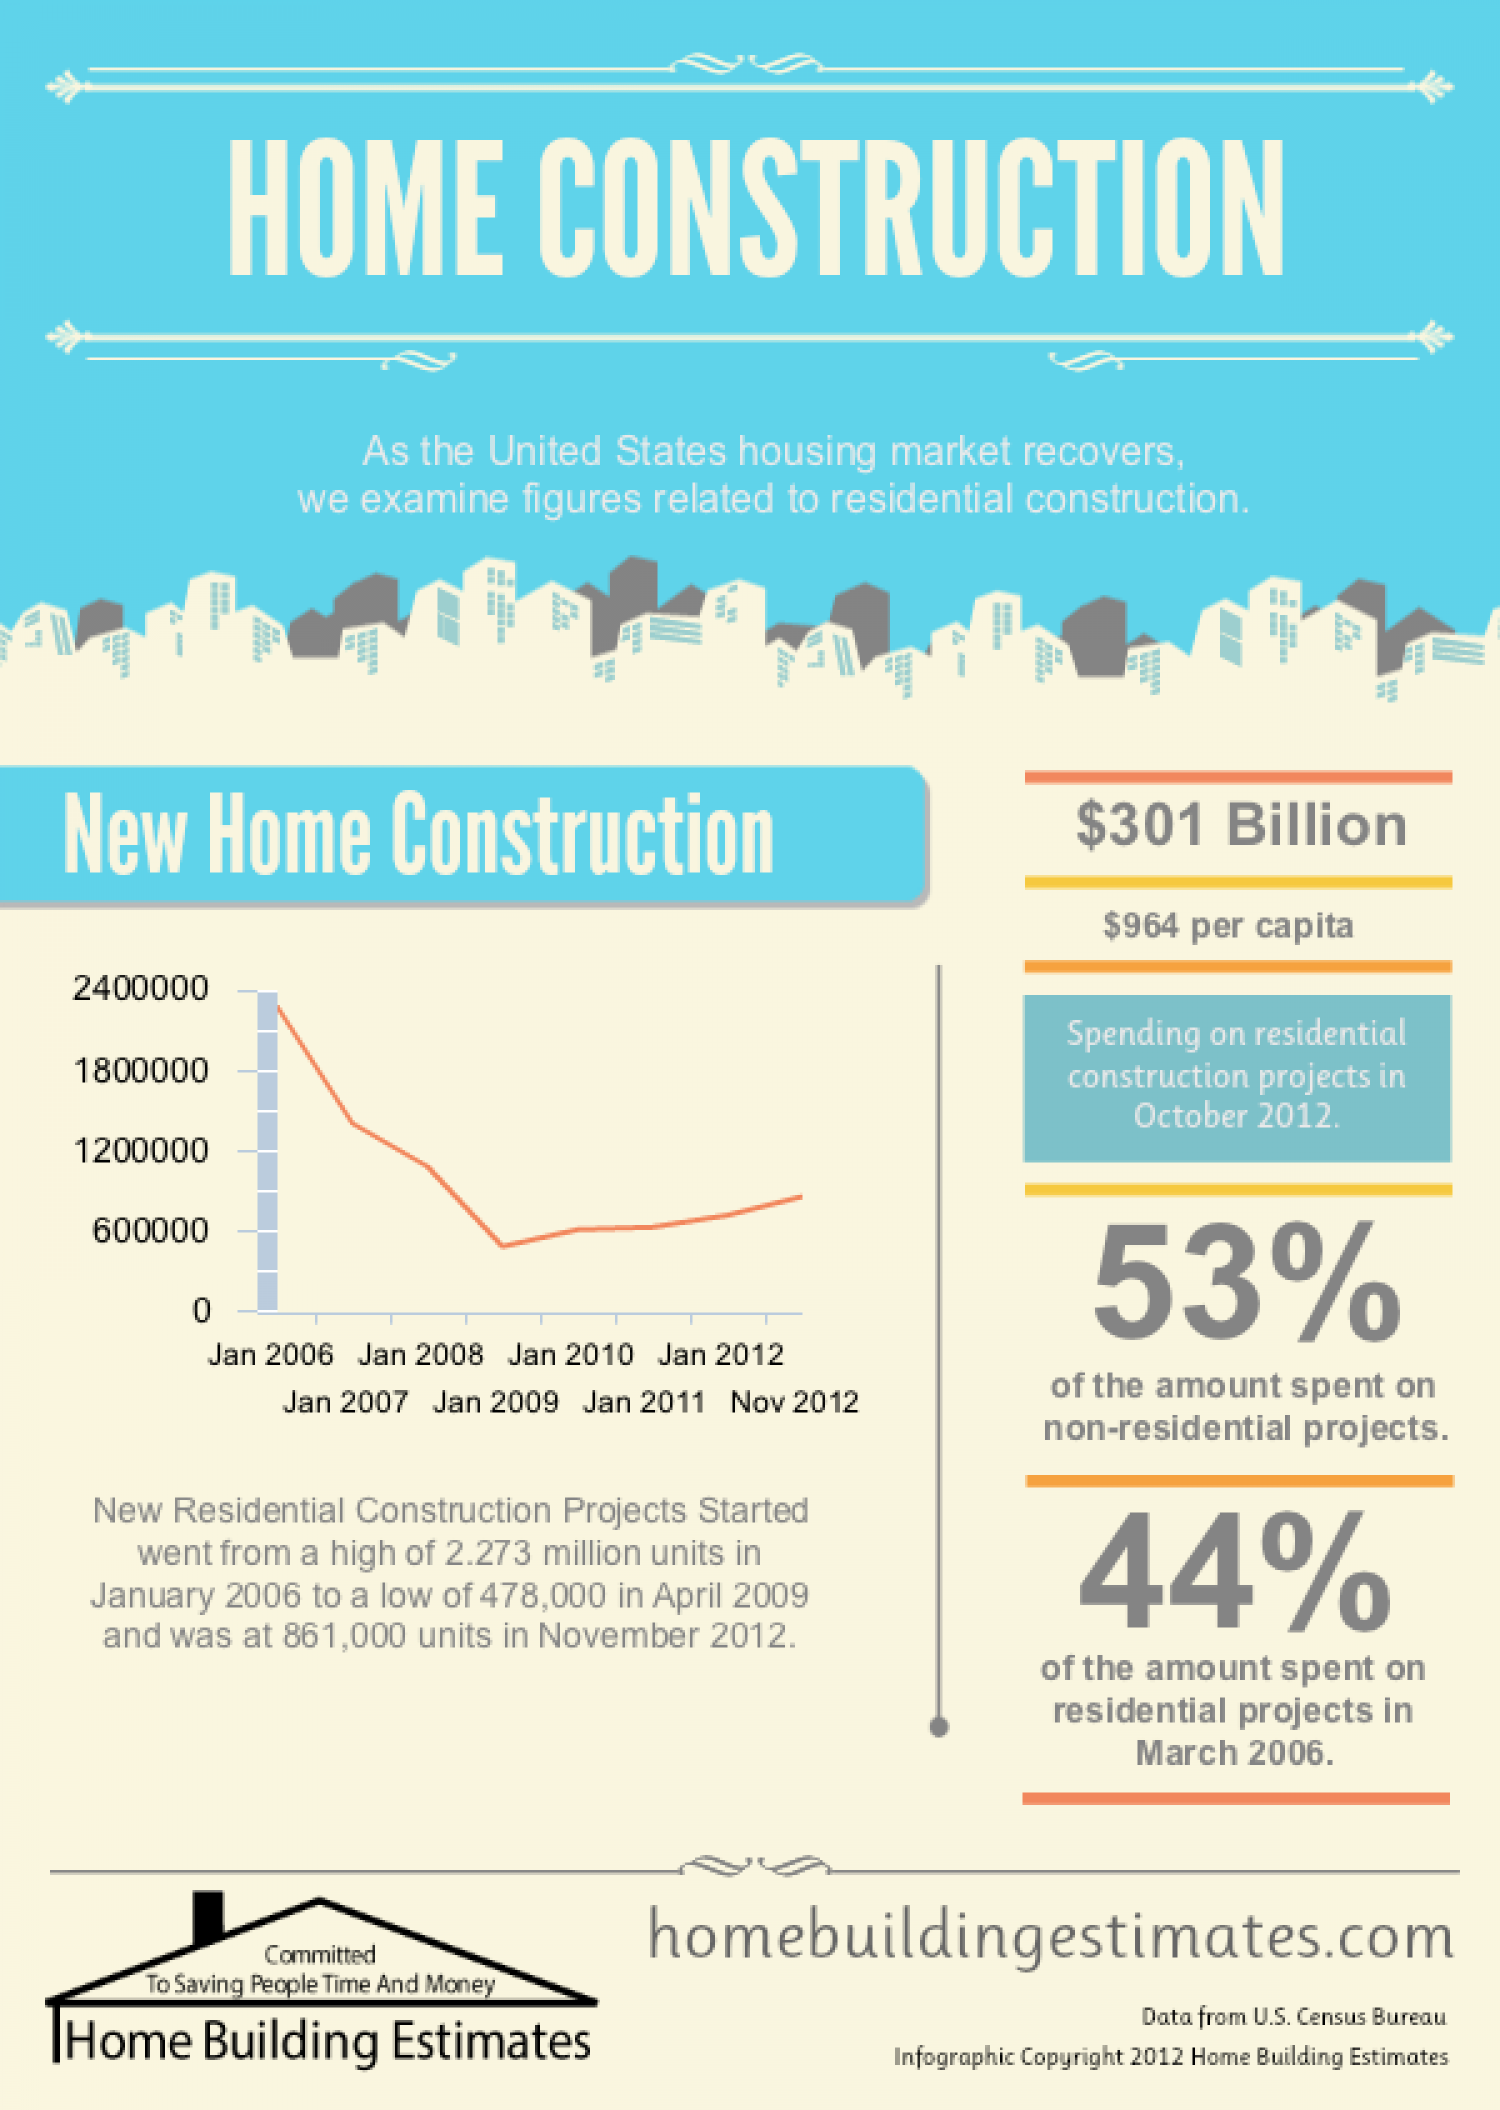 Home Construction Infographic